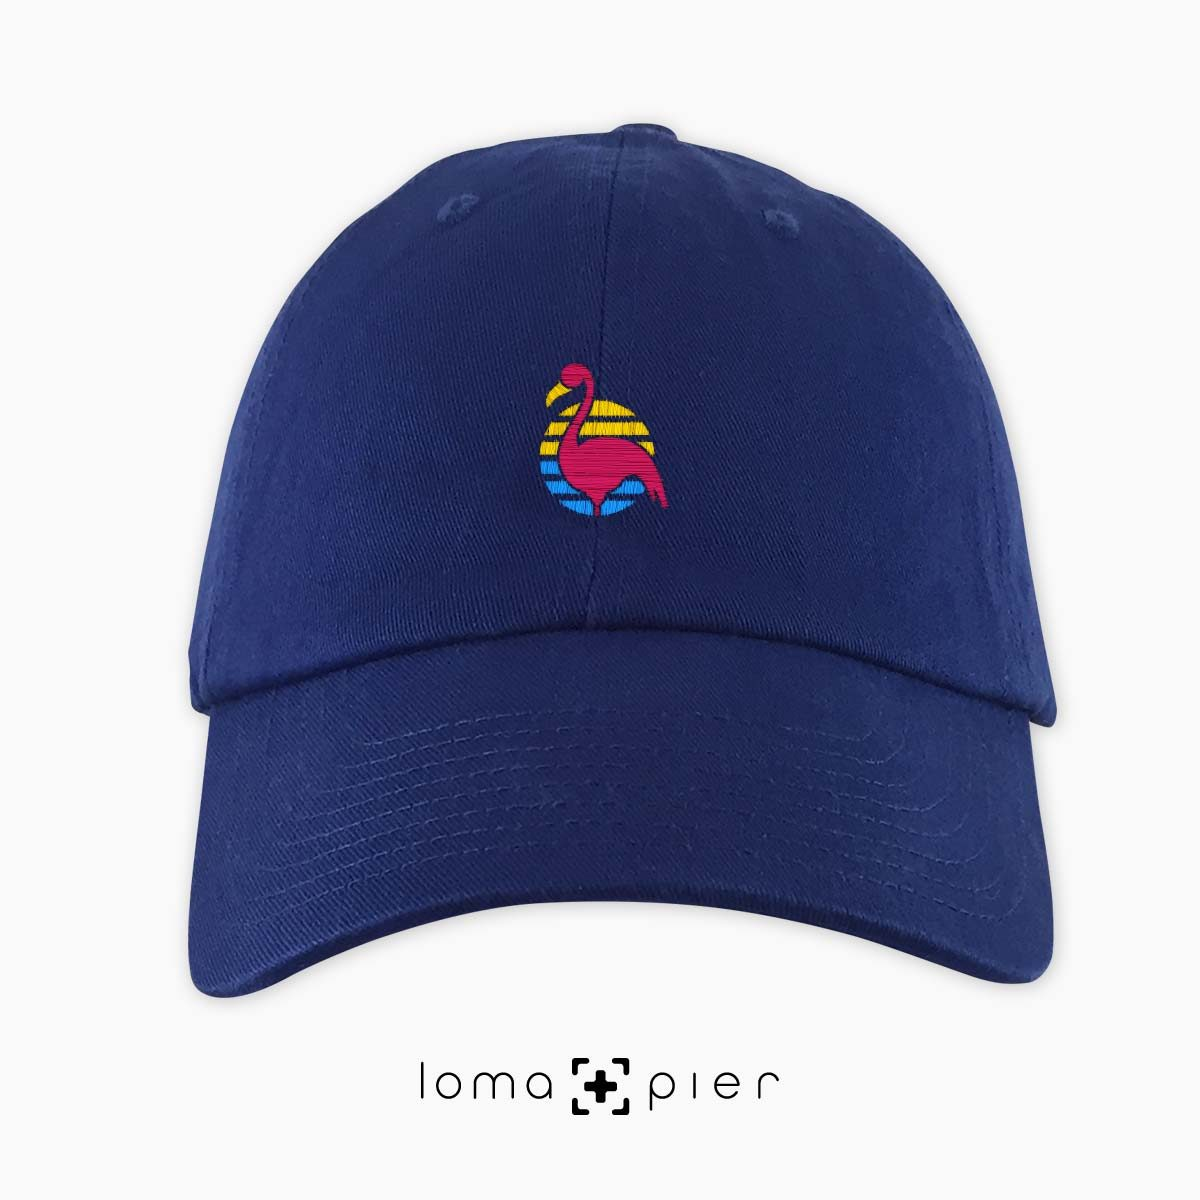 FLAMINGO icon embroidered on a navy blue unstructured dad hat by loma+pier hat store made in the USA